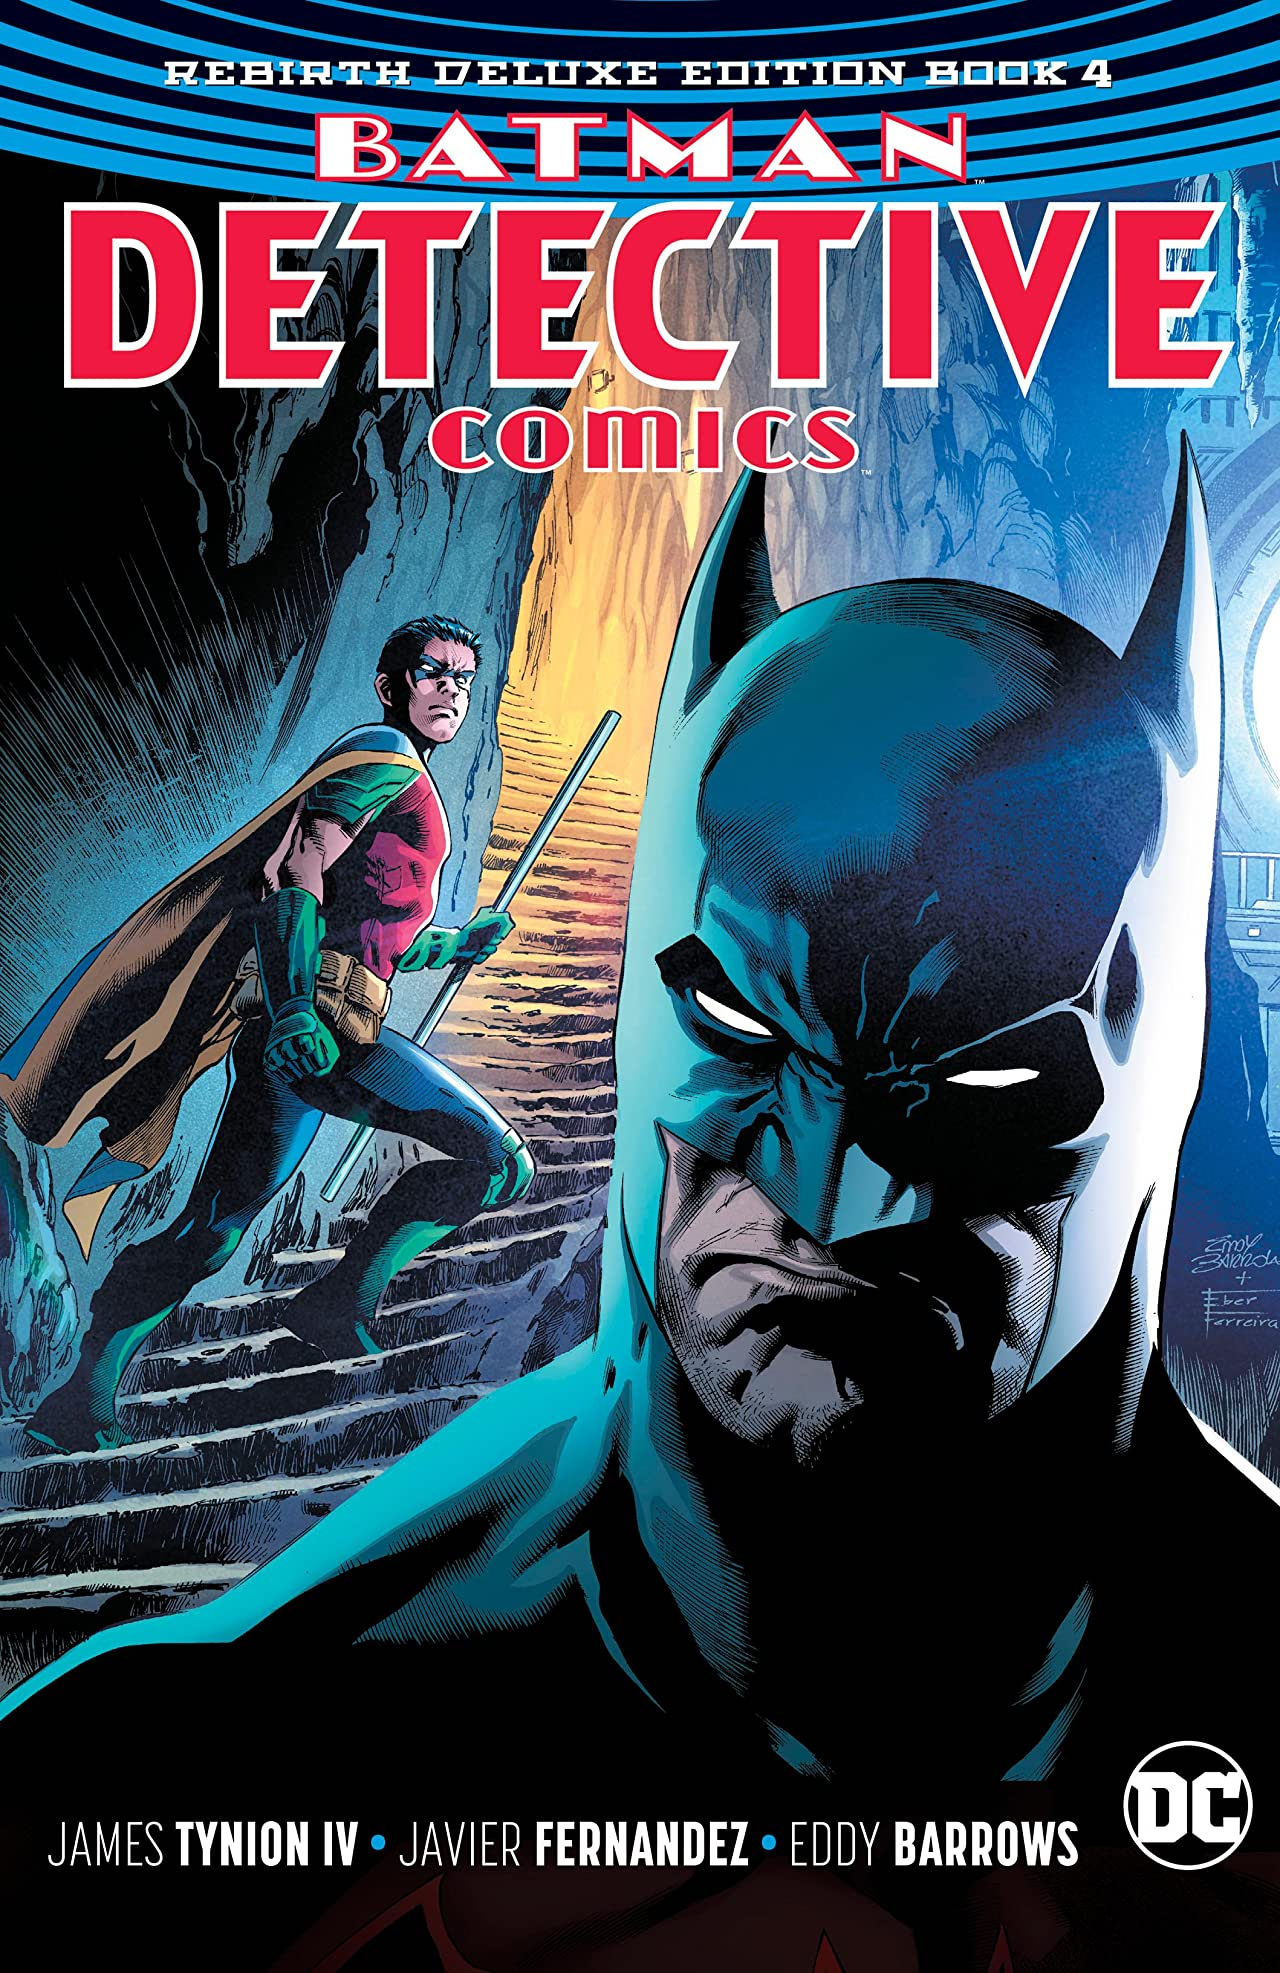 Batman: Detective Comics: The Rebirth Deluxe Edition Book 4